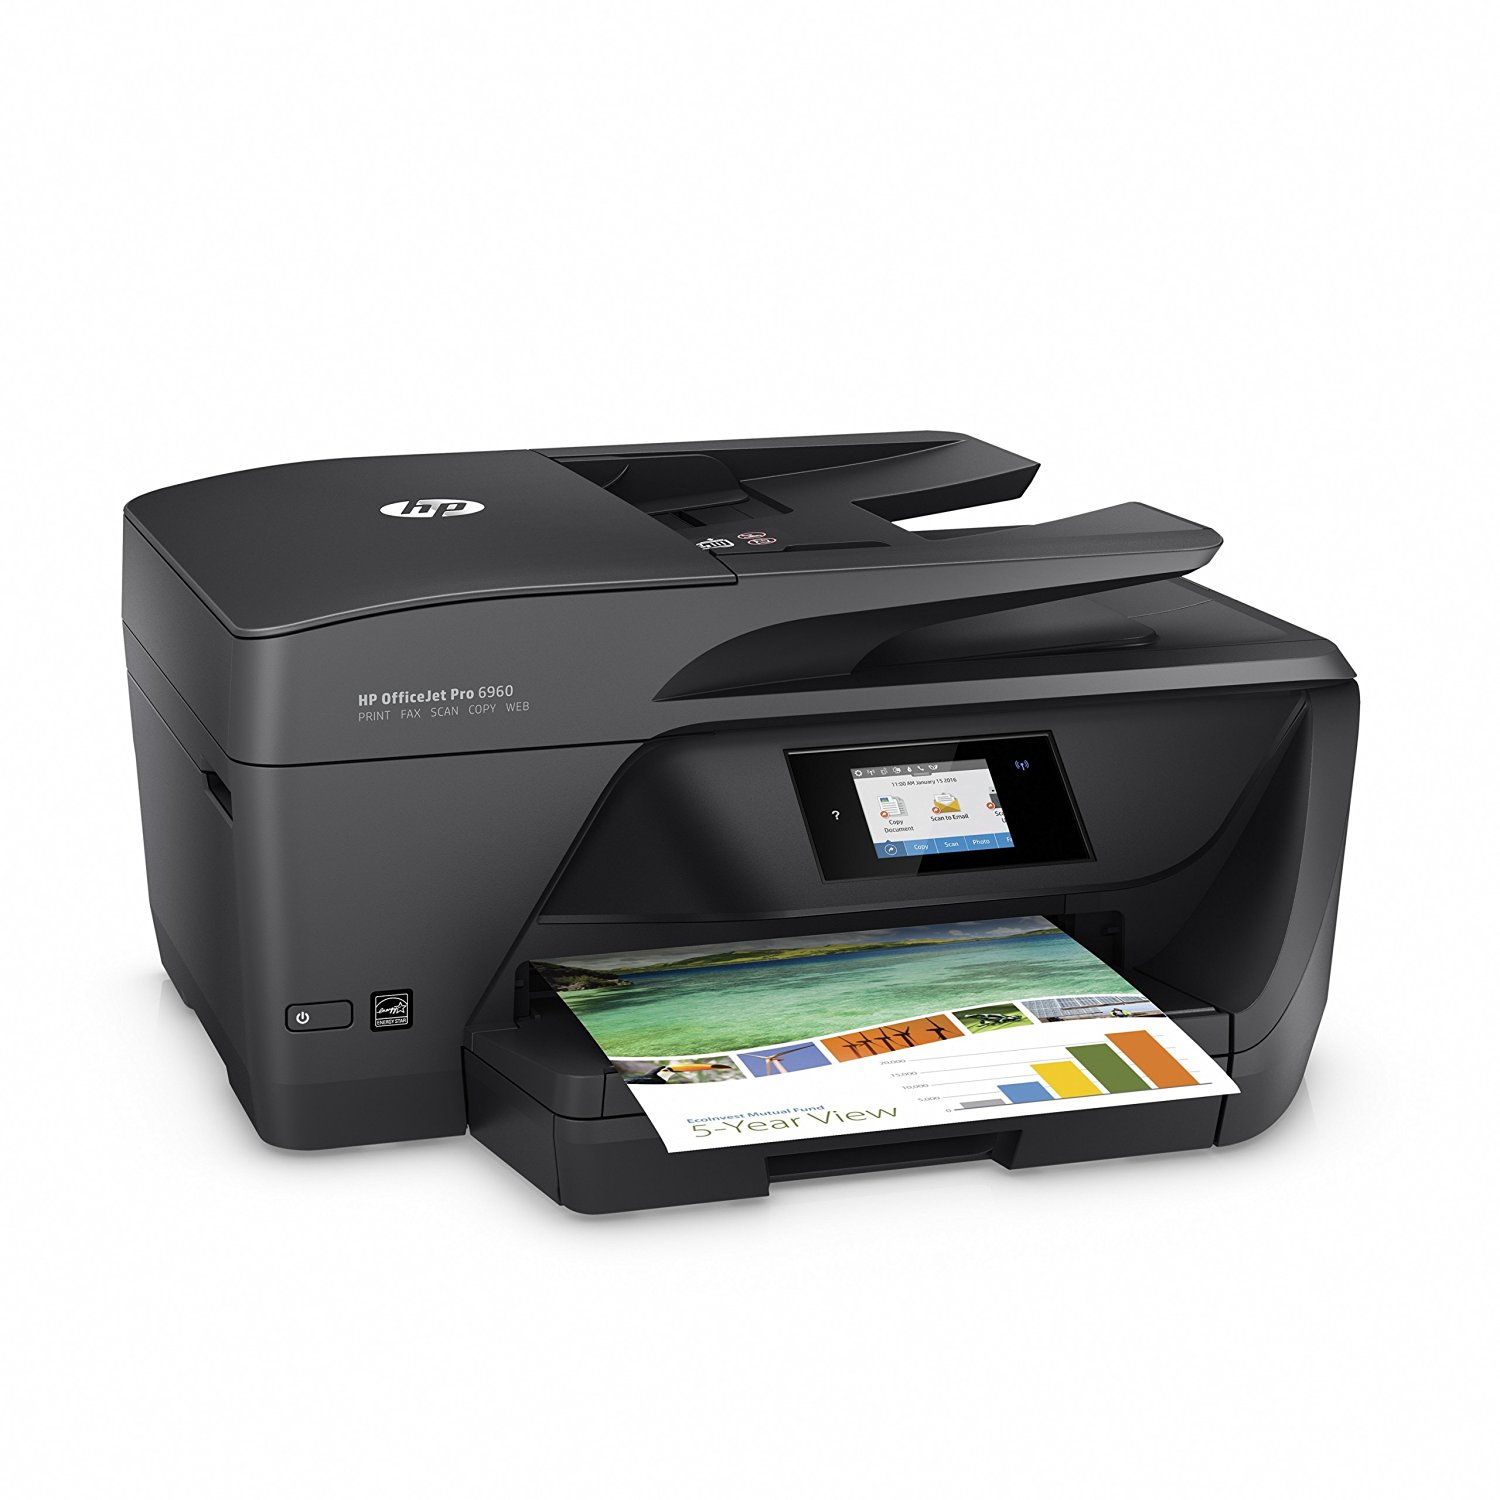 HP OfficeJet Pro 6960 All-in-One Printer Image